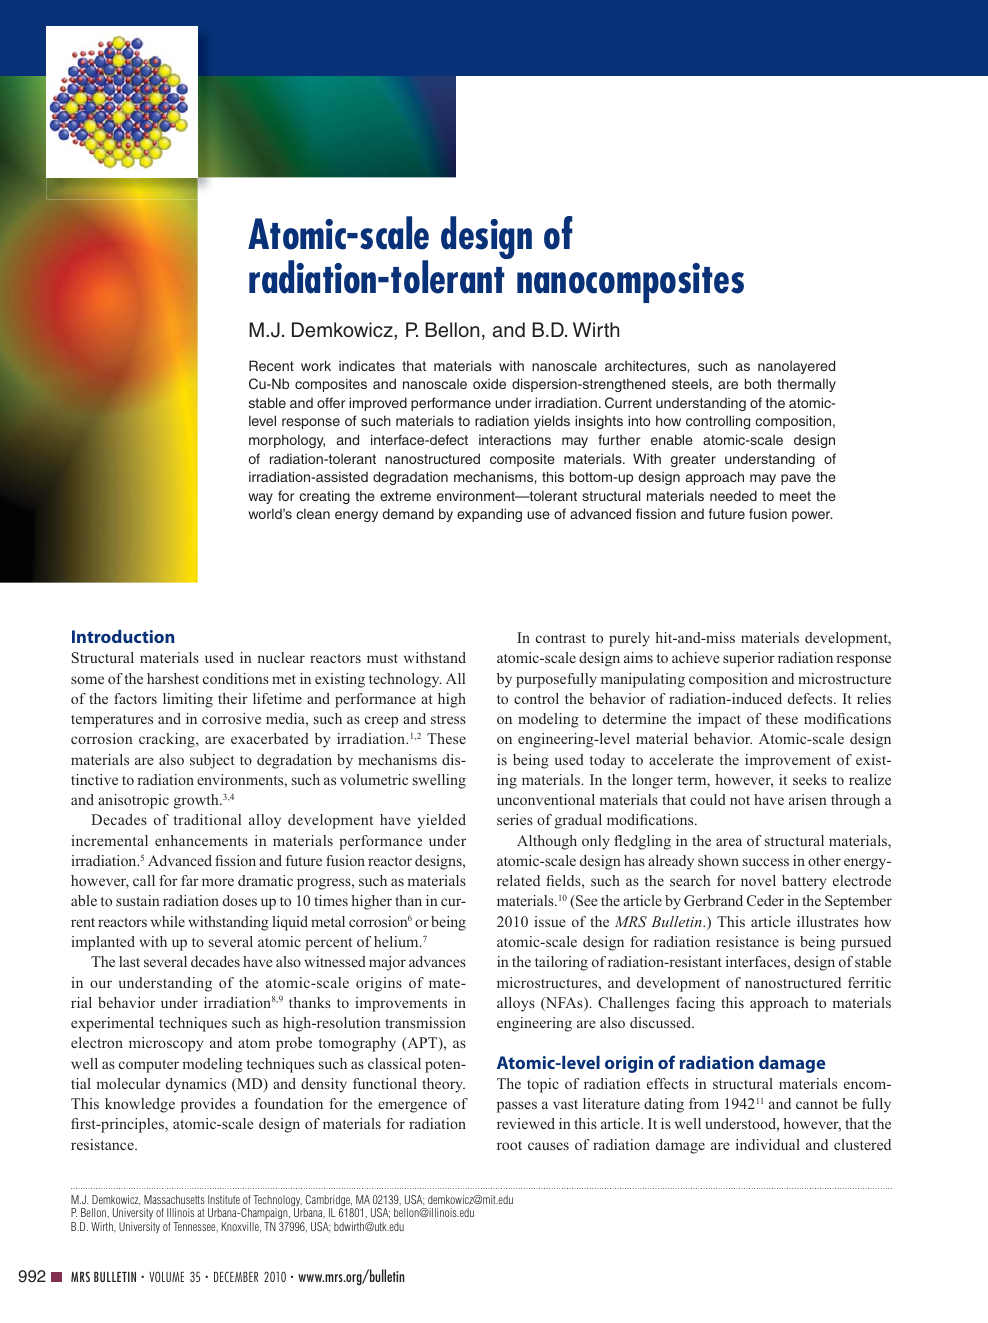 Atomic-scale design of radiation-tolerant nanocomposites – topic of